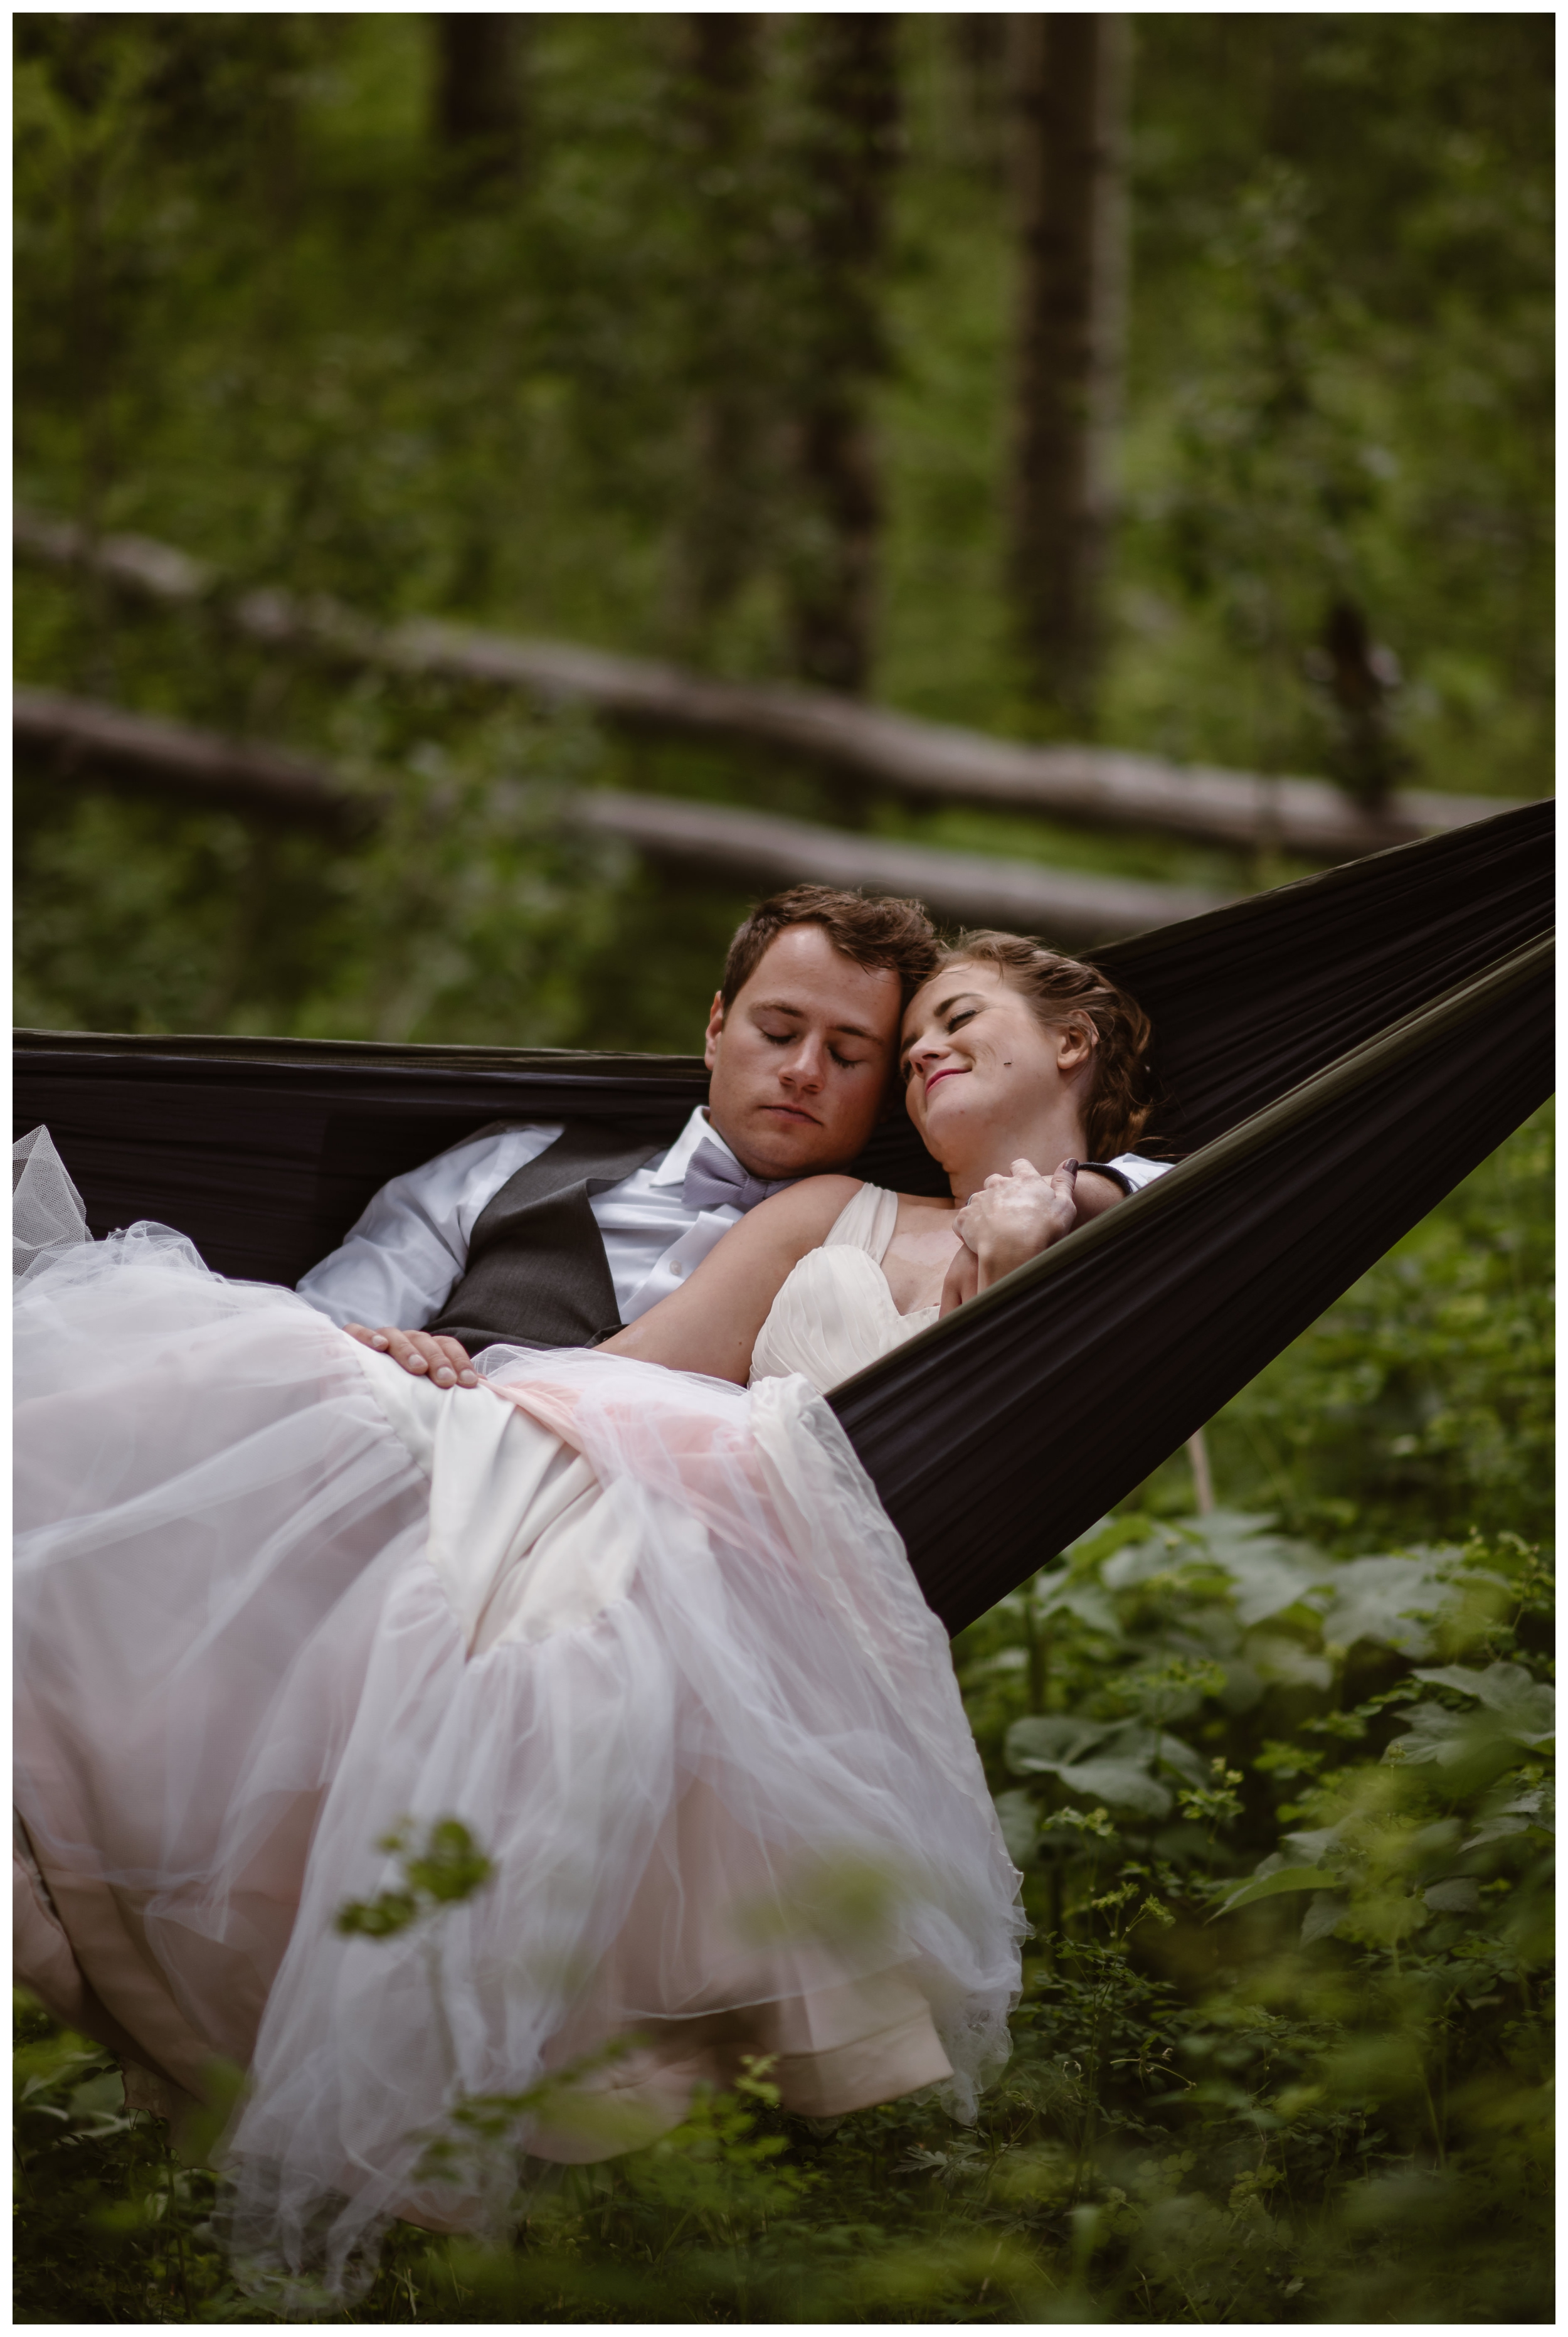 Following their hiking elopement ceremony at the top of Independence Pass, Marcela and Vasily cuddle in a pack hammock surrounded by old growth aspen trees outside the Maroon Bells. Photo by Maddie Mae, Adventure Instead.